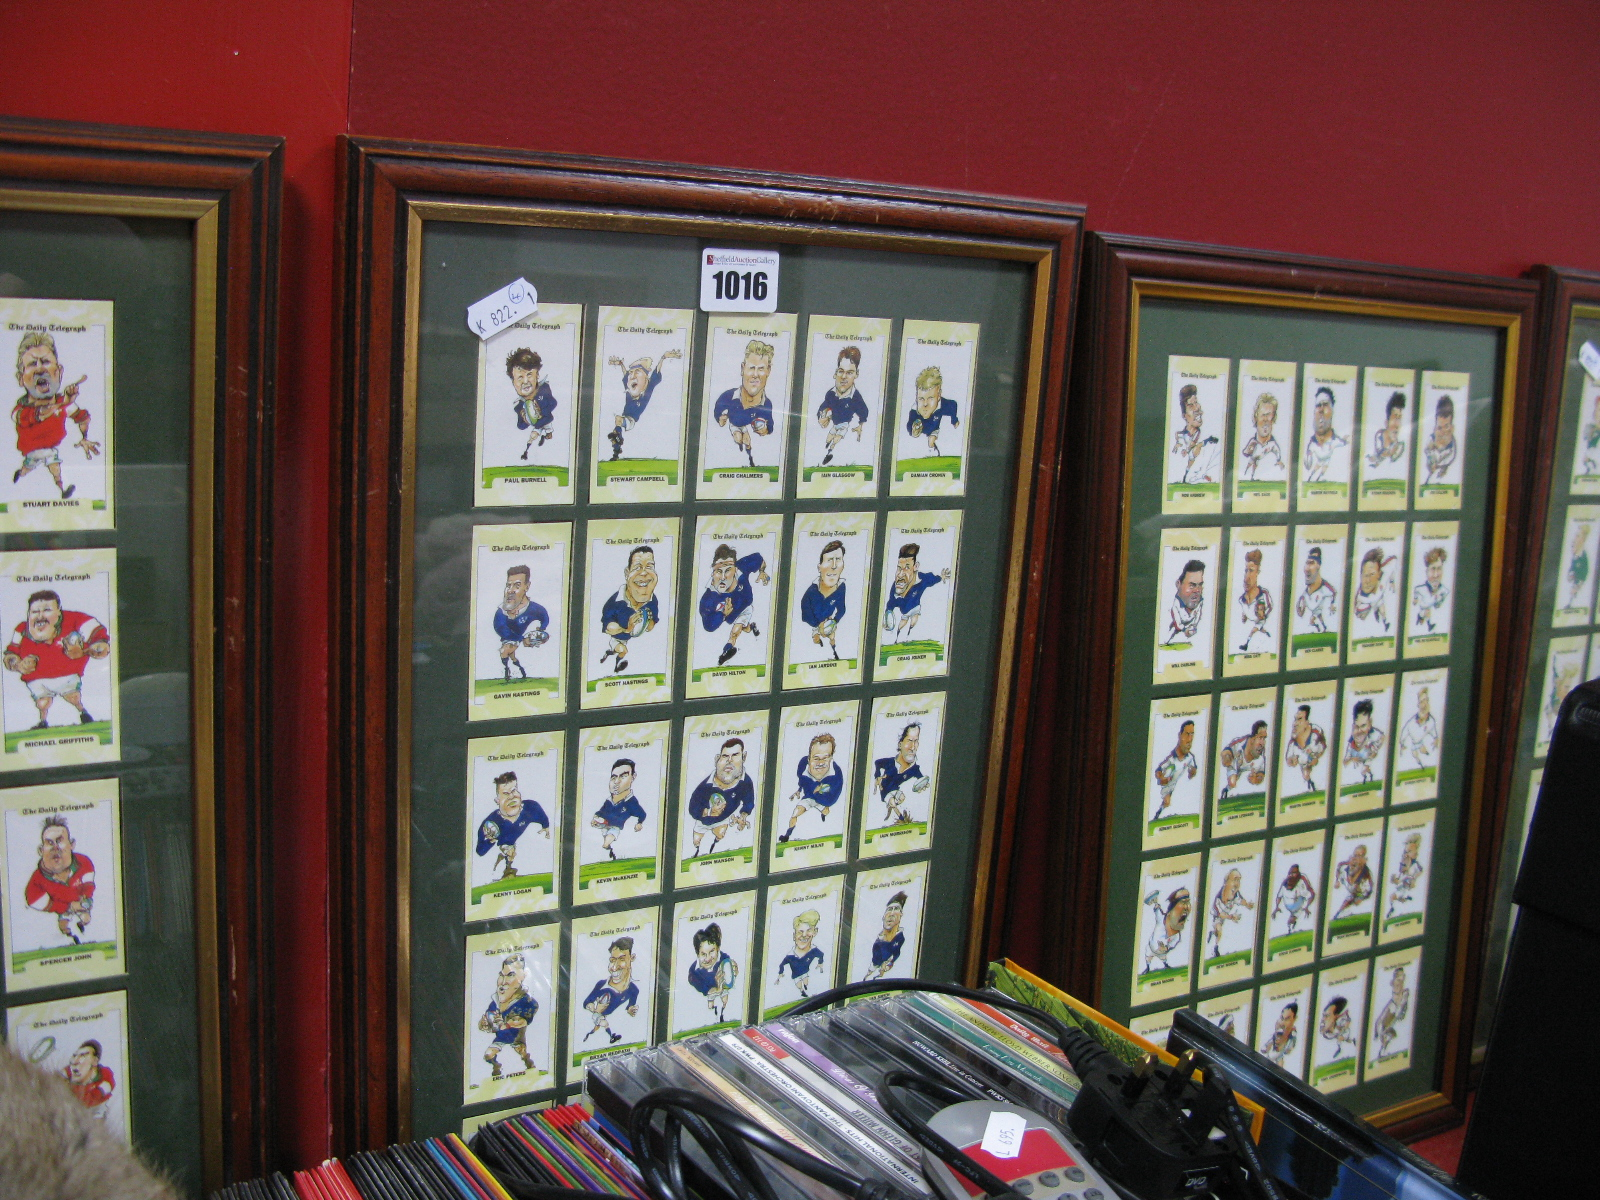 Lot 1016 - Four Daily Telegraph 1995 Rugby World Cup Home Nations Trade Card Sets, framed.